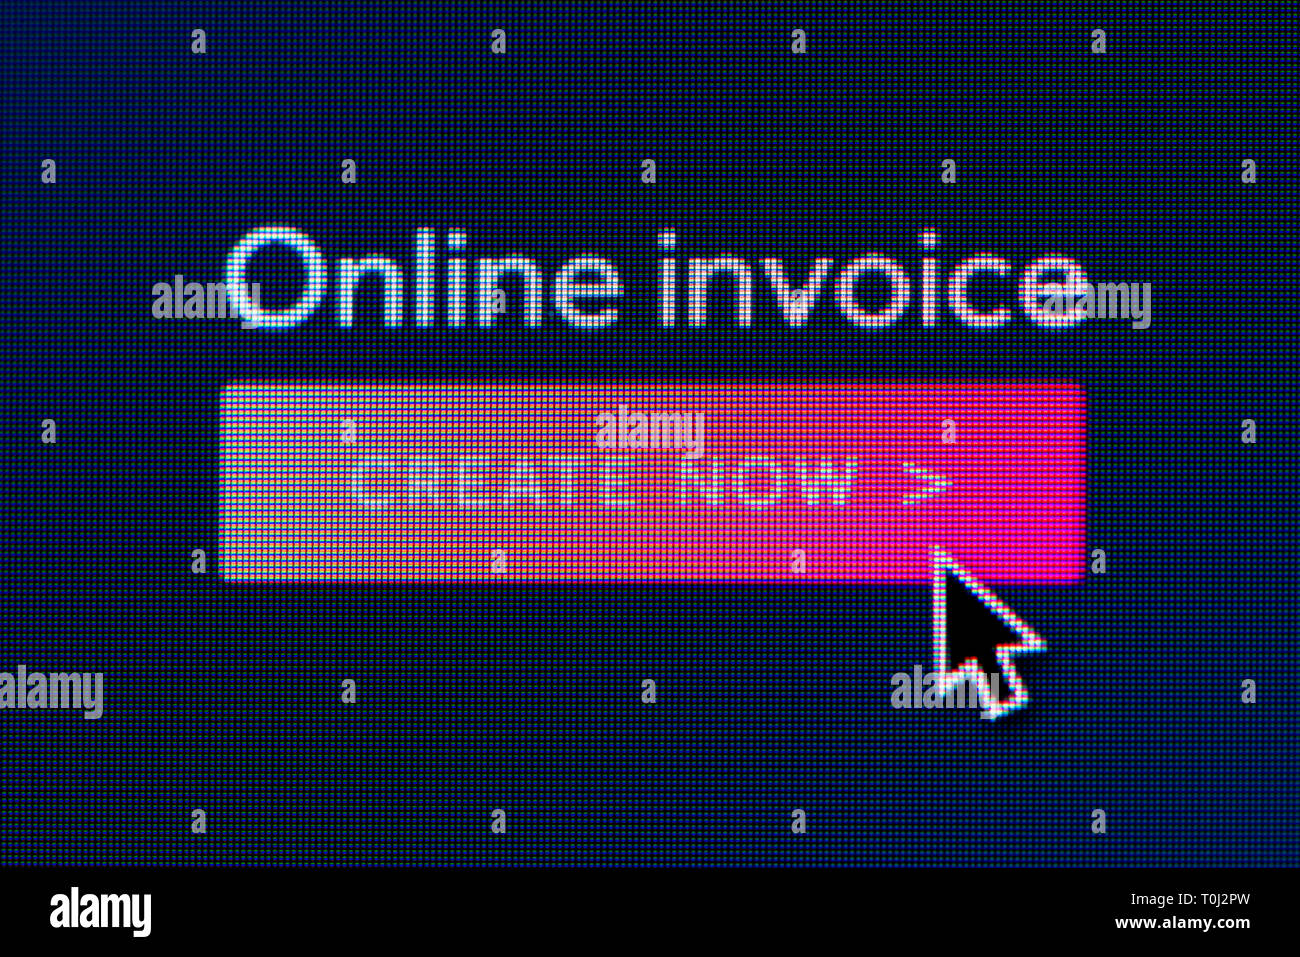 The prompt to create an online invoice is seen on a computer screen along with a mouse cursor (Editorial use only) - Stock Image